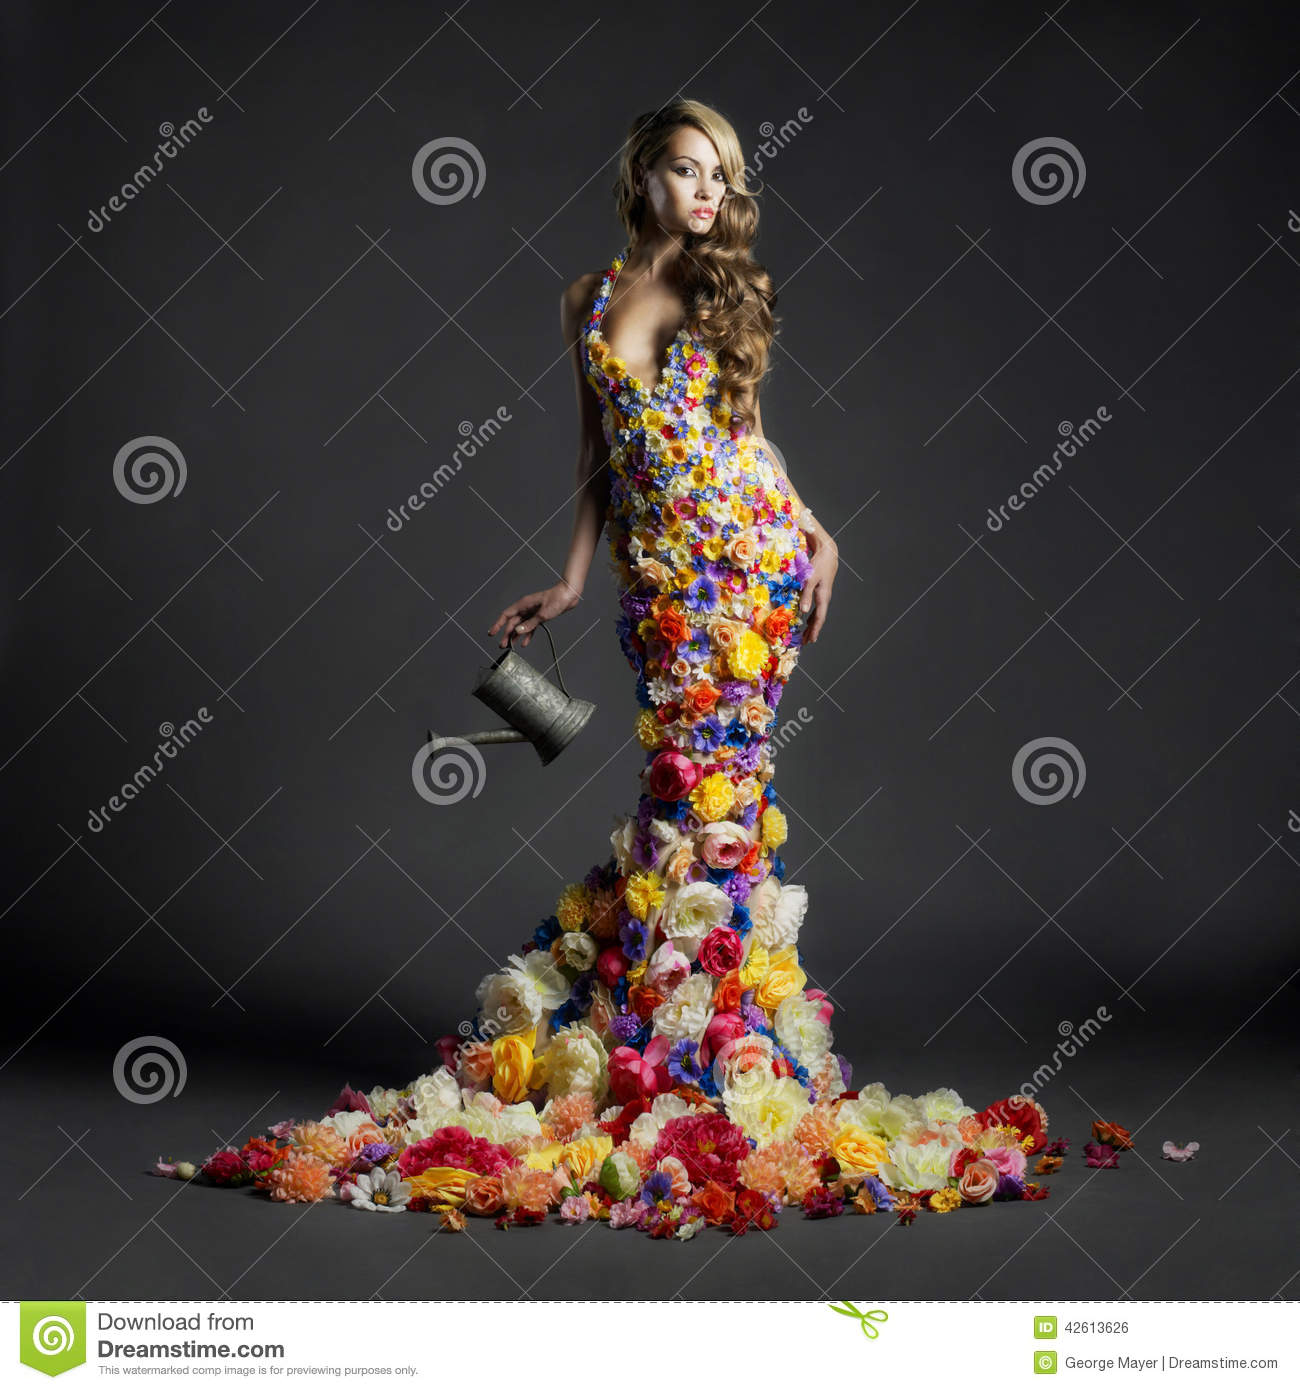 Gorgeous lady in dress of flowers